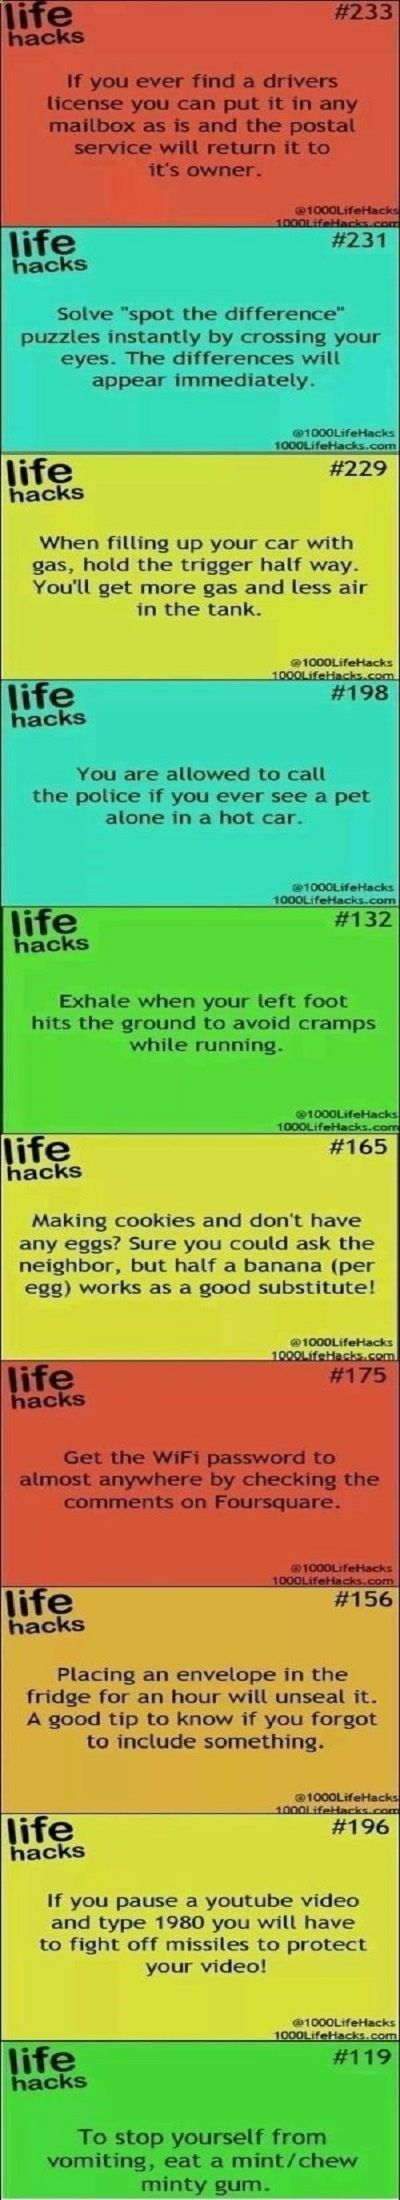 Life Hacks That You Would Definitely Get The Urge To Try | #lifehack #love #diy #howto #dailymotivation #doityourself #positivity #good #daily #life #creative #tutorial #happy #diydecor #like #fun #beautiful #tumblr #tips #howtos #diys #goals #likes #smile #laugh #clean #cool #positivitypage #selfcare